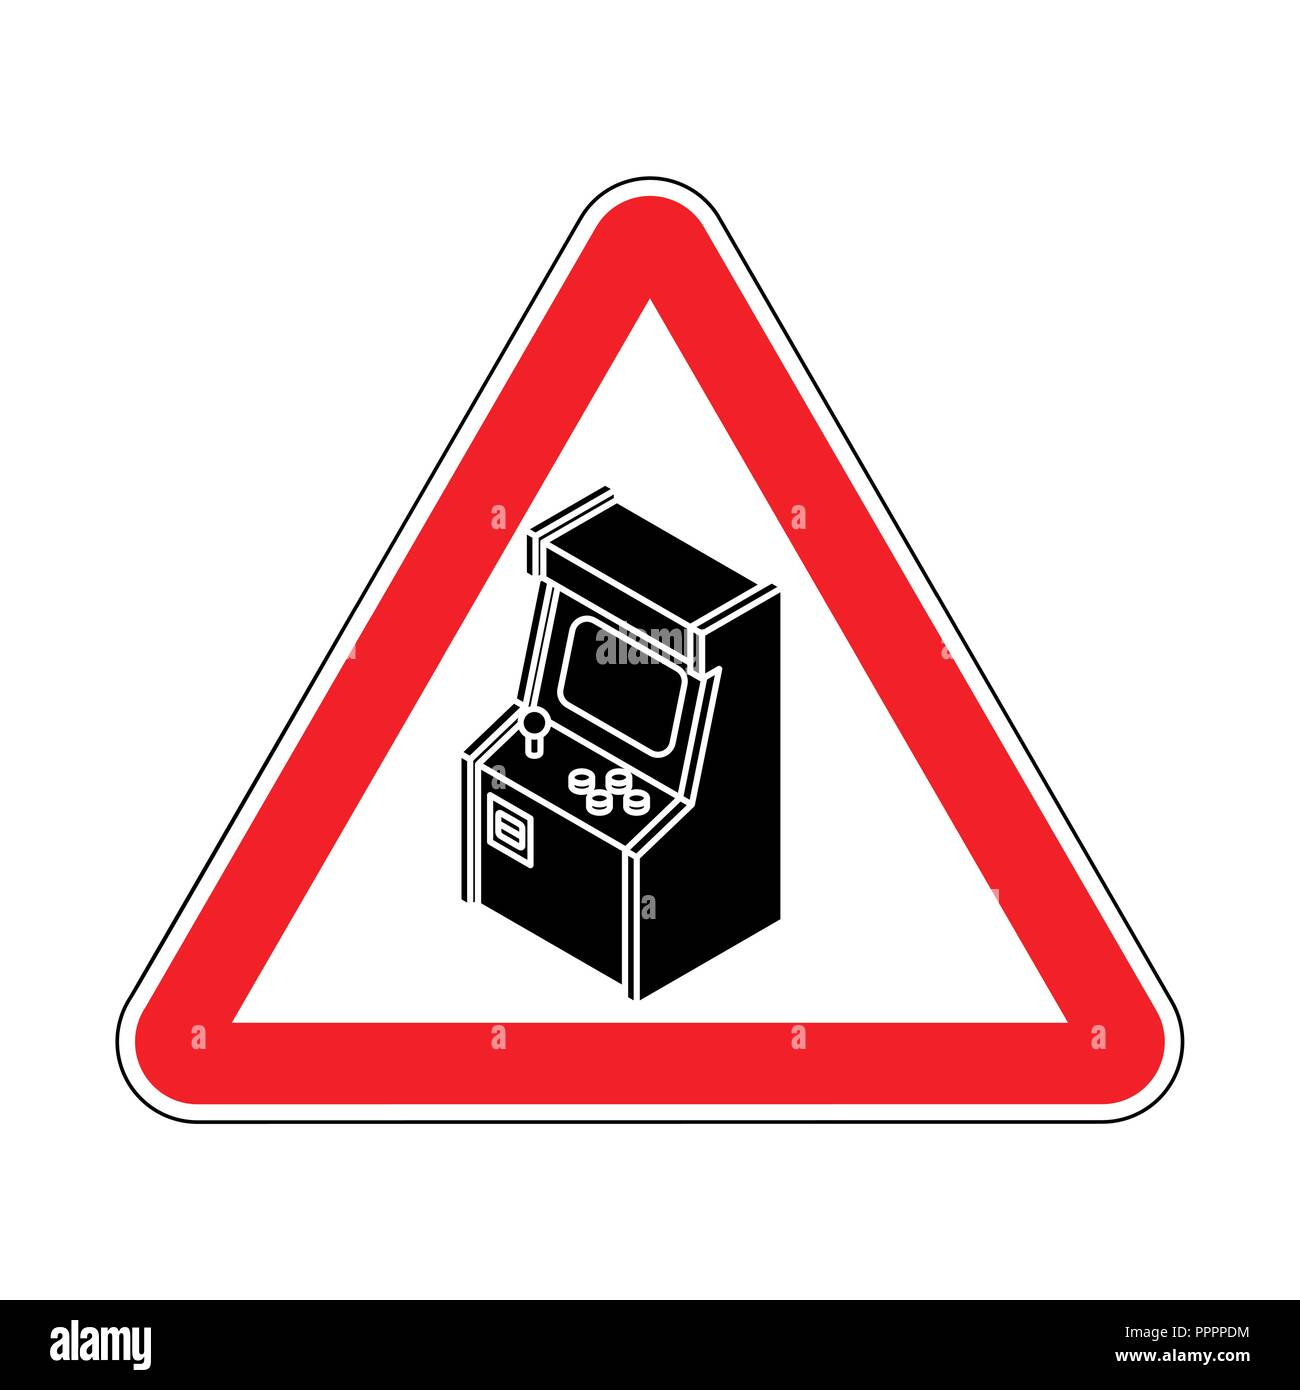 Attention Old Arcade Machine. Caution Retro VideoGame Gaming. Red road sign. Warning play - Stock Vector